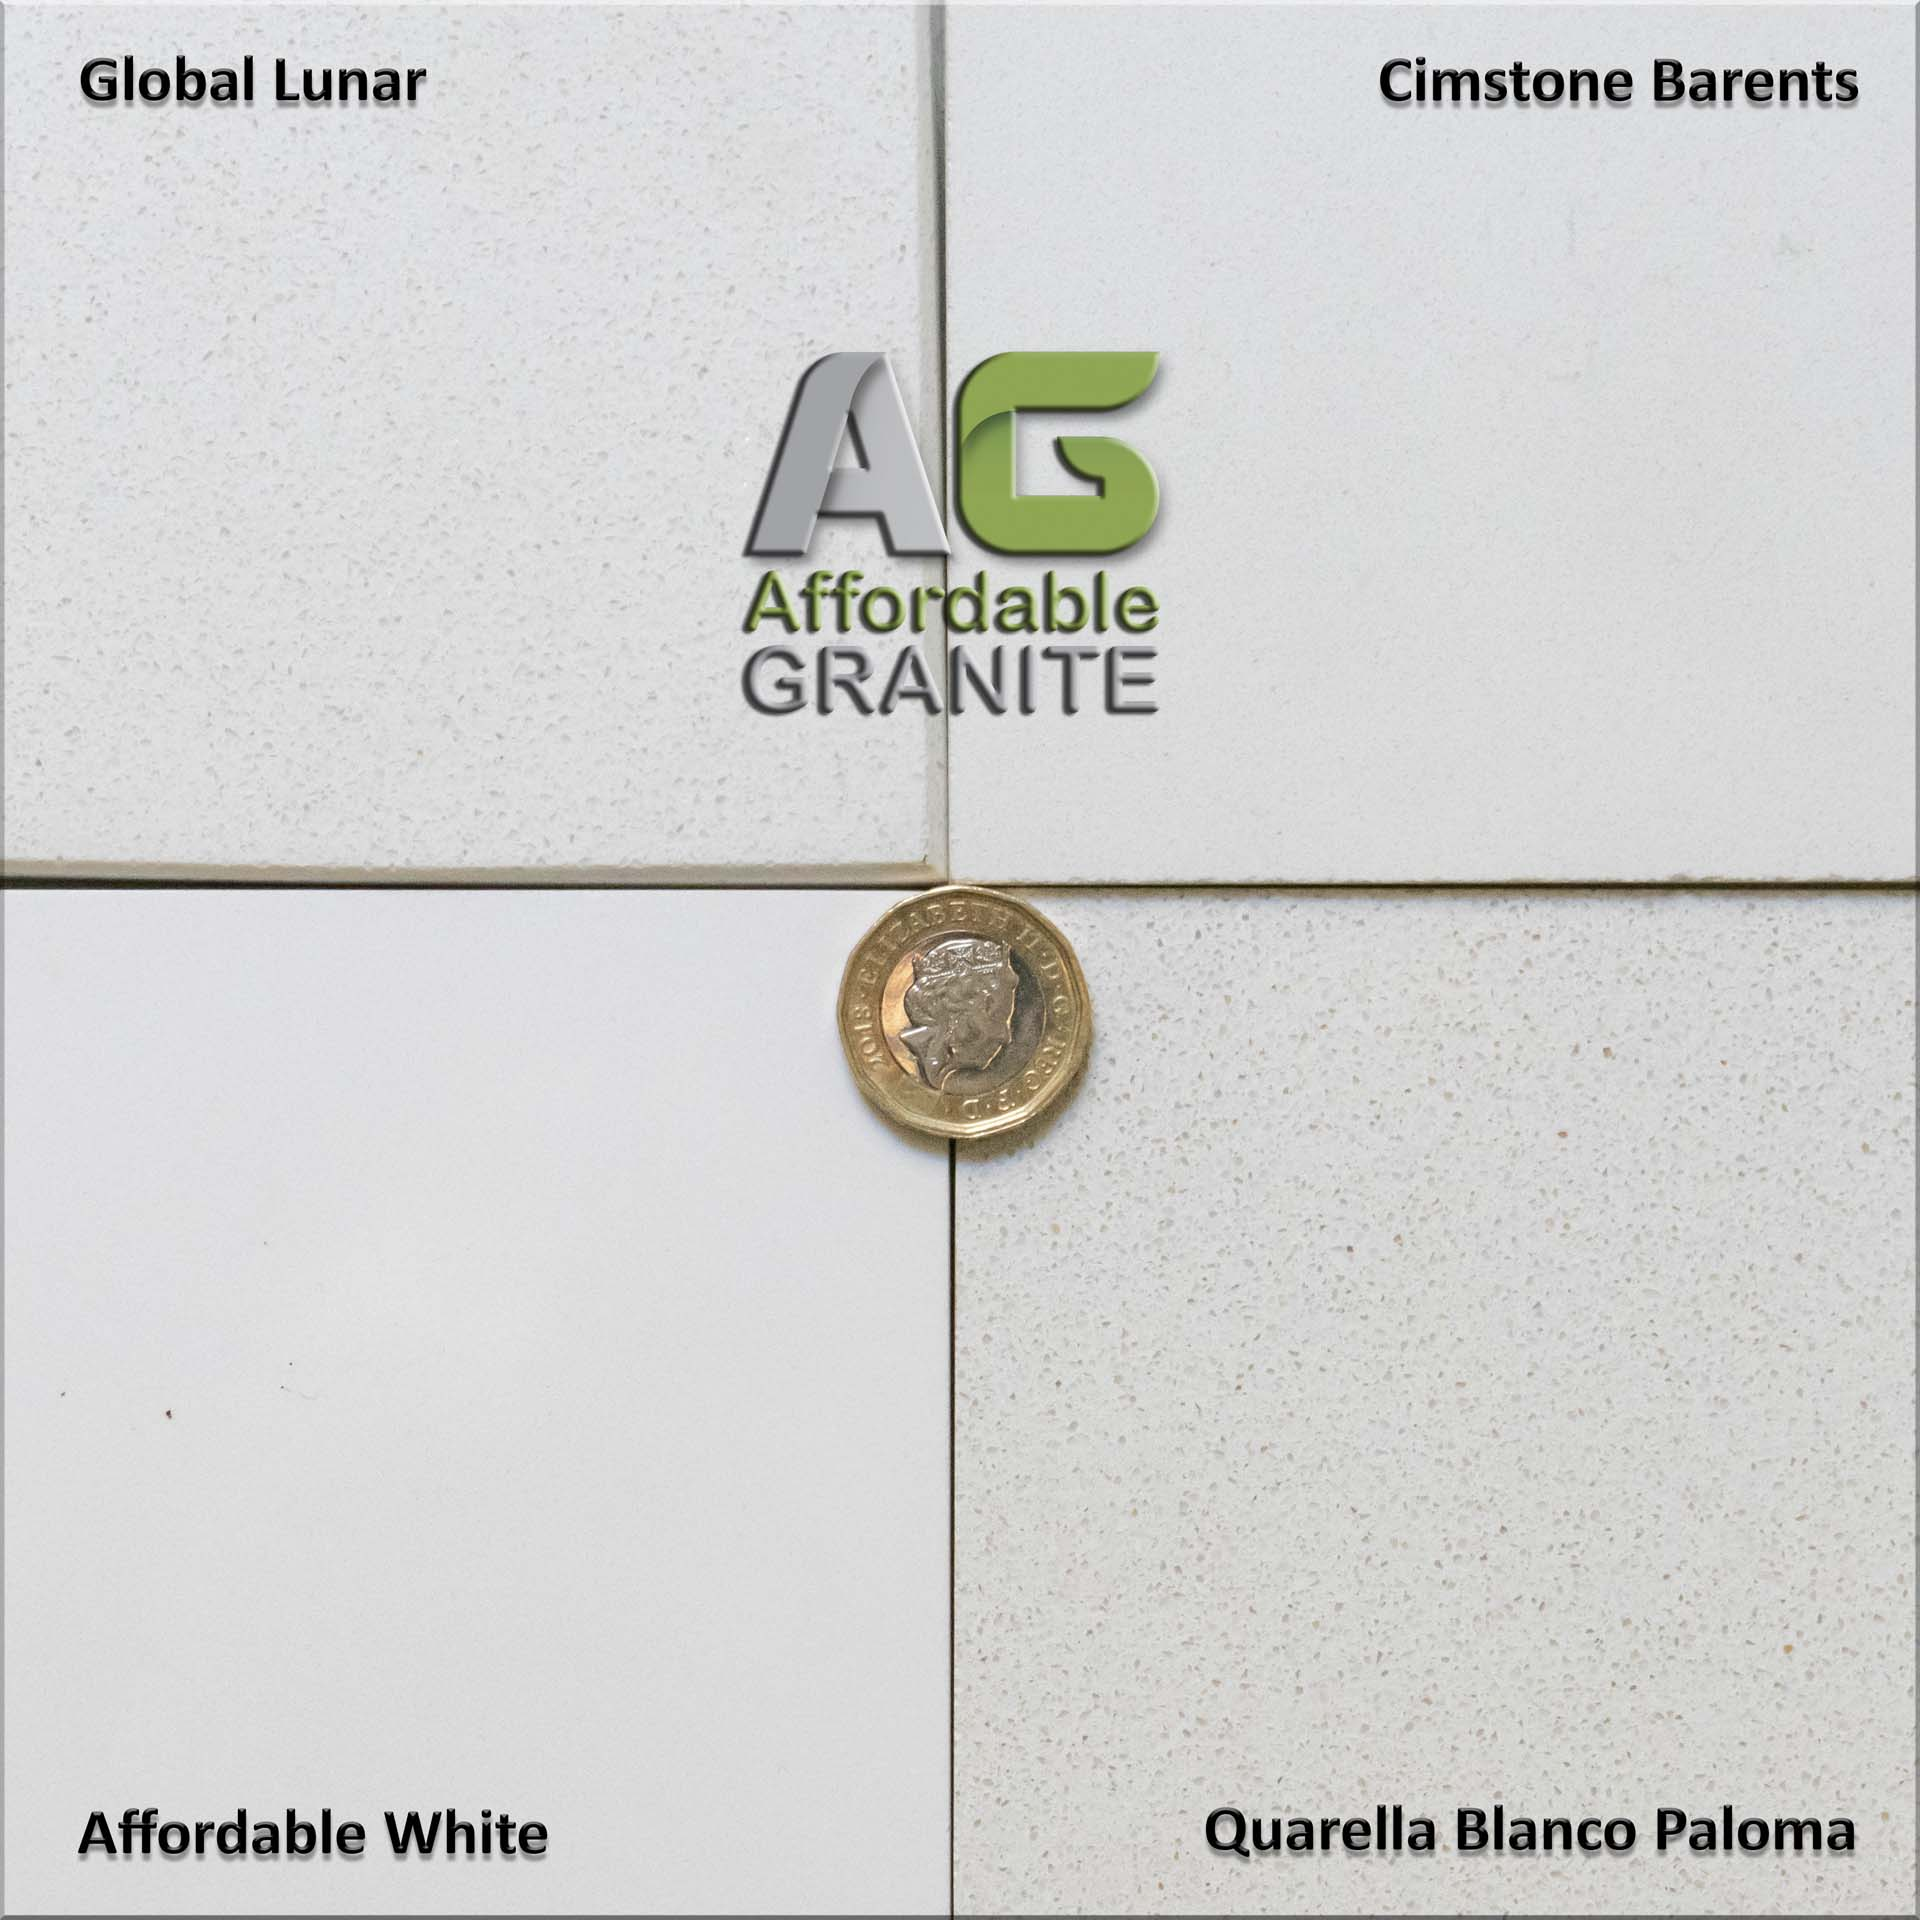 Global Lunar Quarella Blanco Paloma Cimstone Barents Affordable White quartz worktops